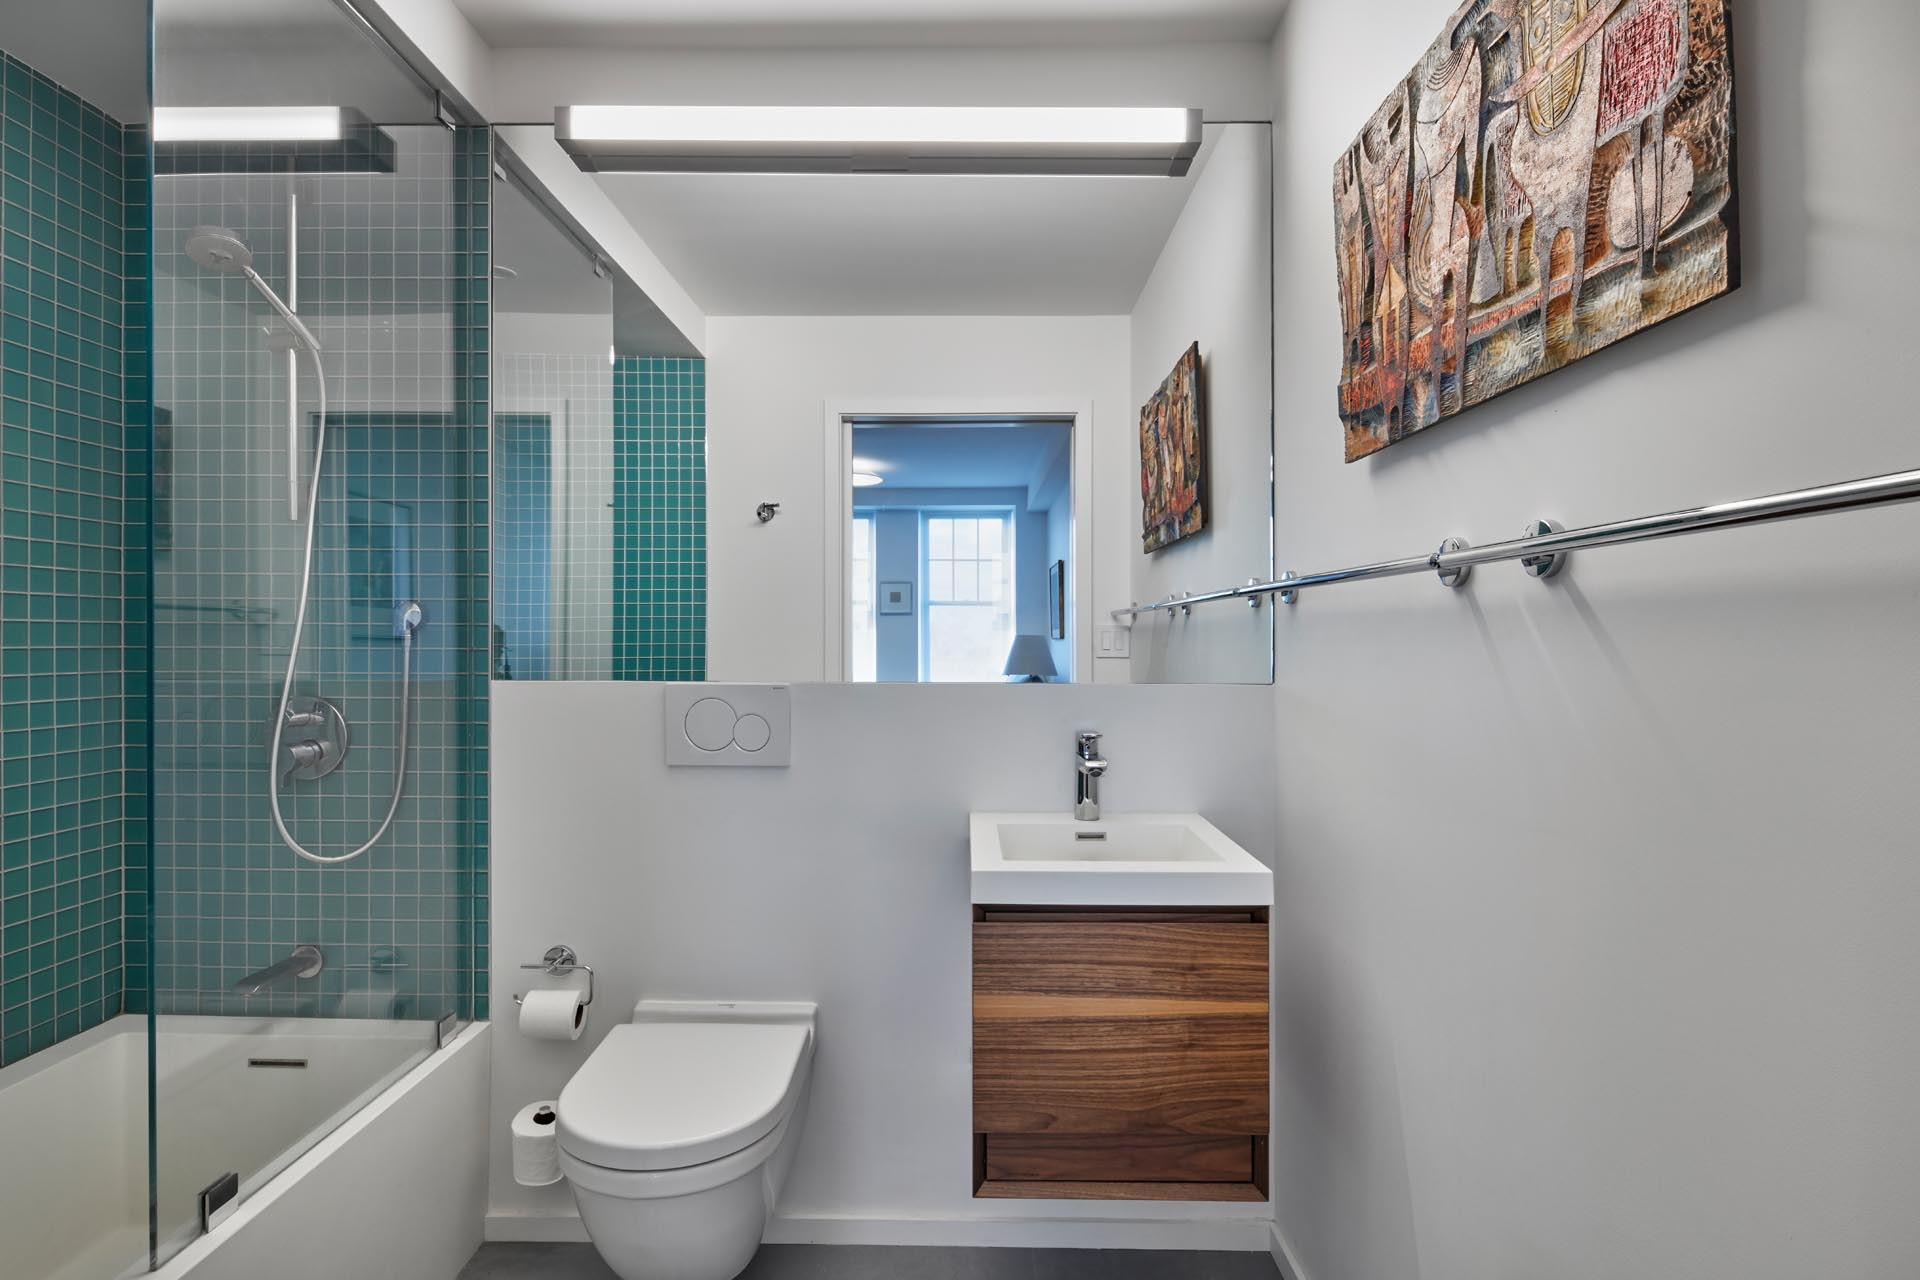 A modern bathroom with bright white walls, a simple wood vanity with white sink, and a shower/bath combo with square turquoise tiles on the walls.